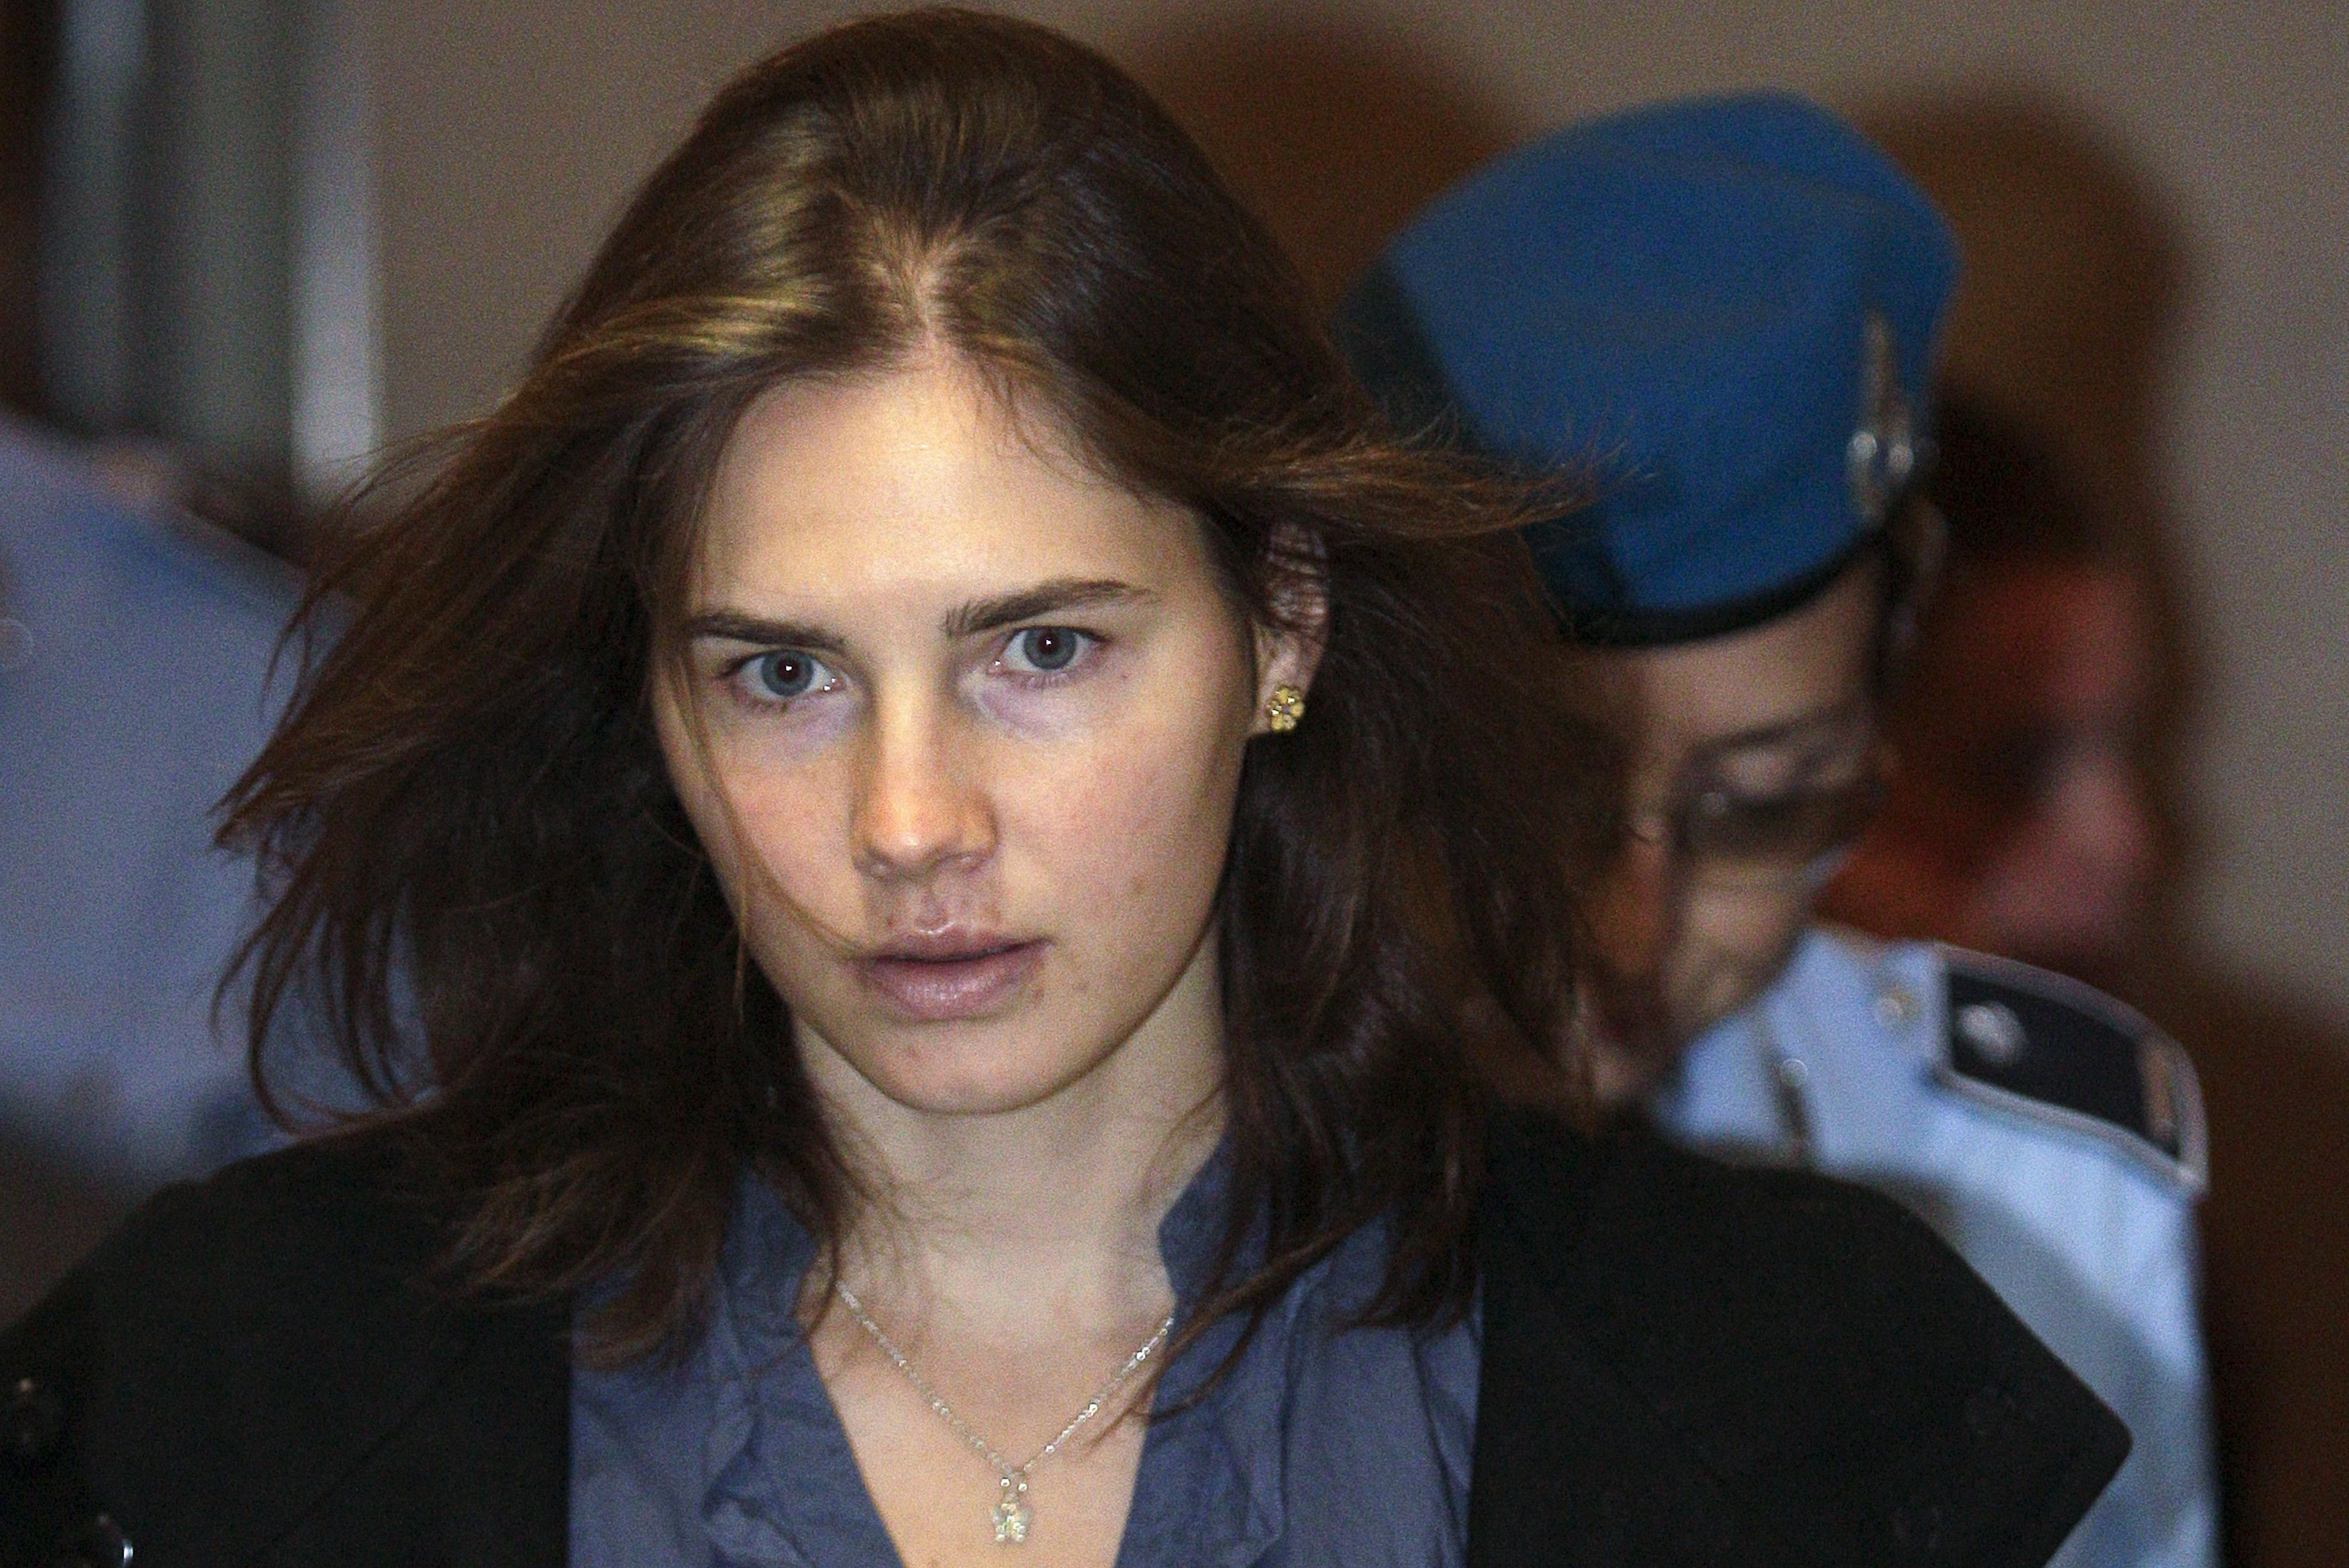 Amanda Knox, the U.S. student convicted of murdering her British flatmate Meredith Kercher in Italy in November 2007, arrives at the court during her appeal trial session in Perugia in this September 30, 2011 file photo.